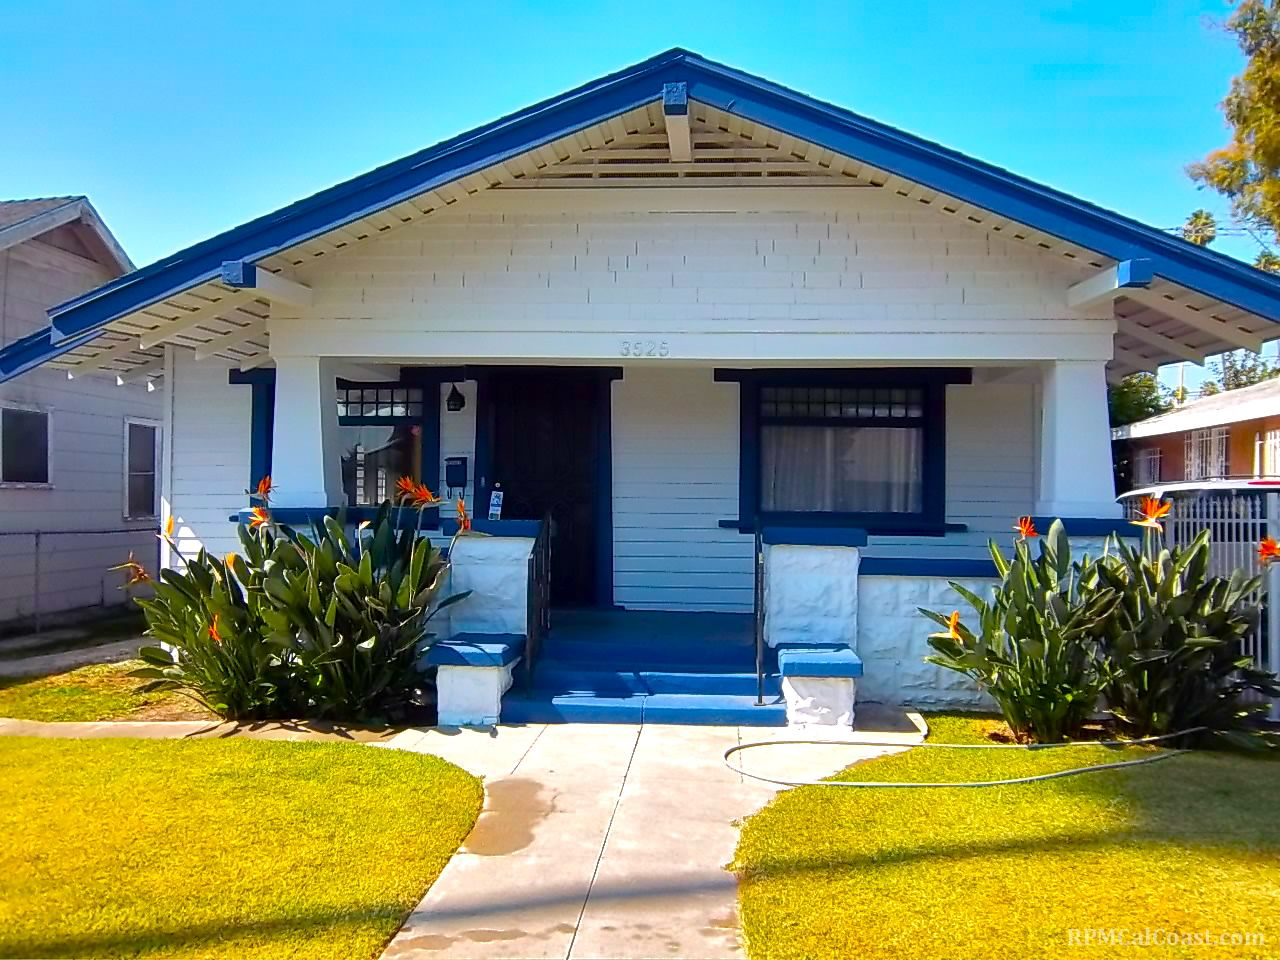 Jefferson Park Los Angeles Apartments And Houses For Rent